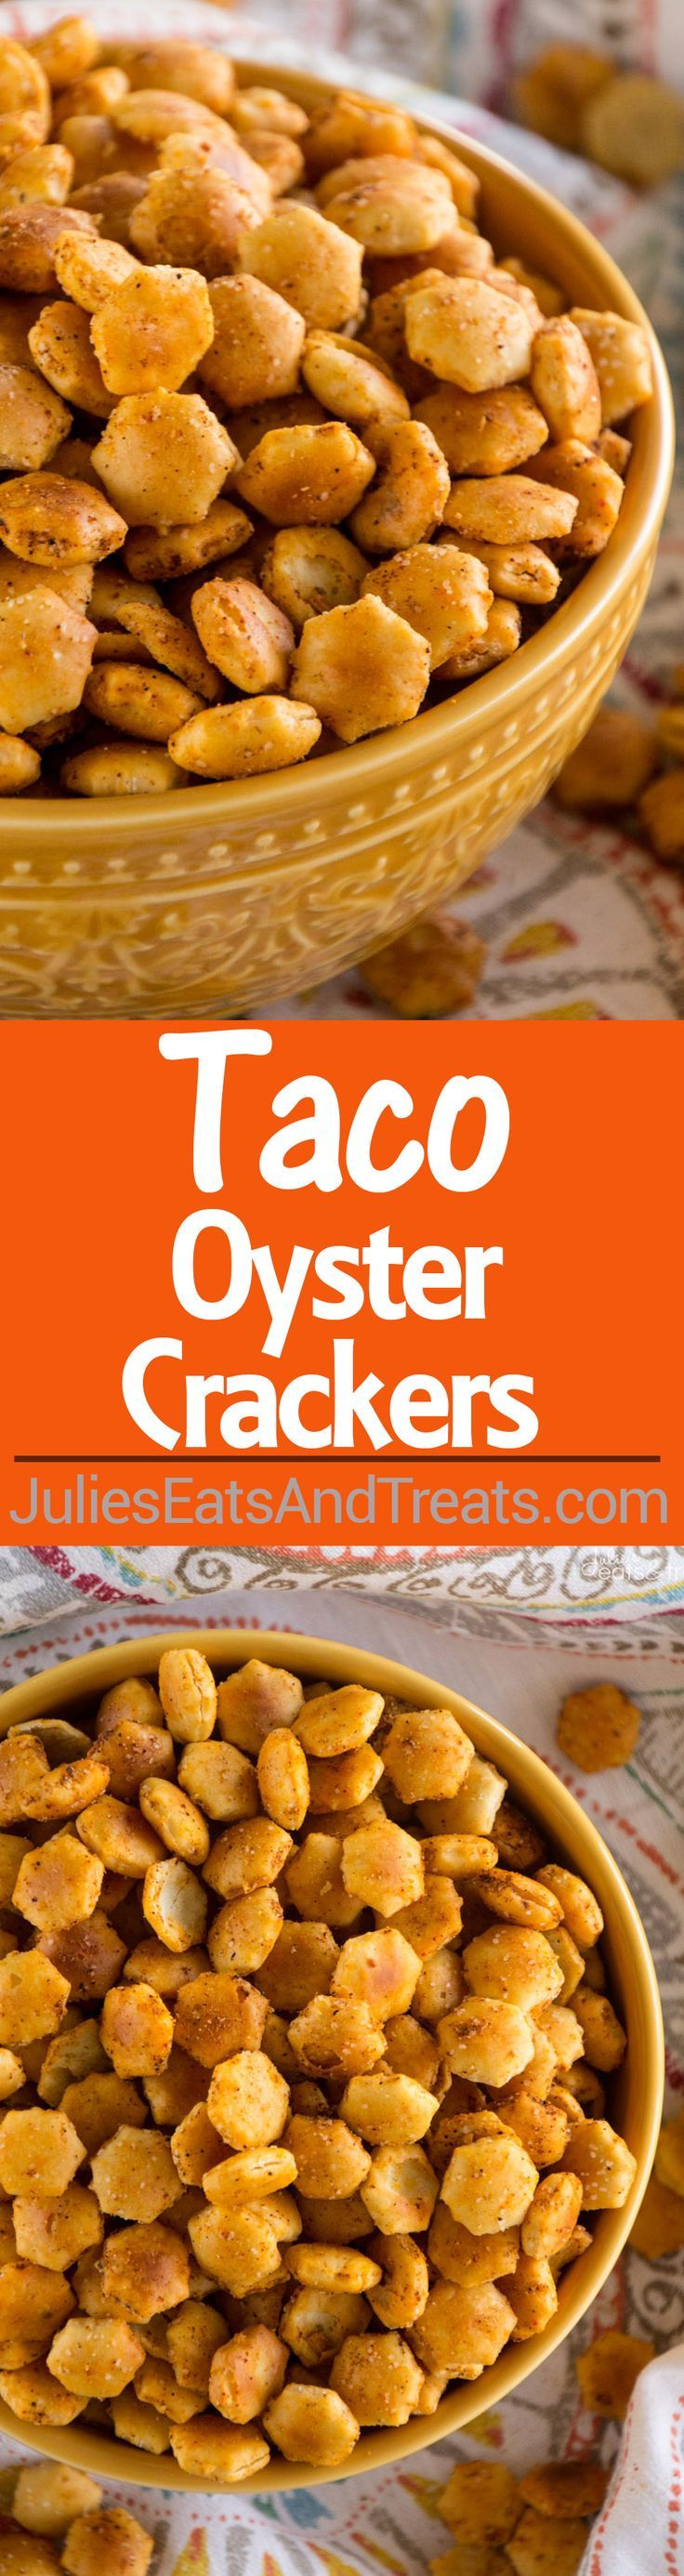 Taco Oyster Crackers Recipe ~ Quick, Easy Snack Mix Recipe that's Got a Kick to it! No One Will Be Able to Stop Munching on These!